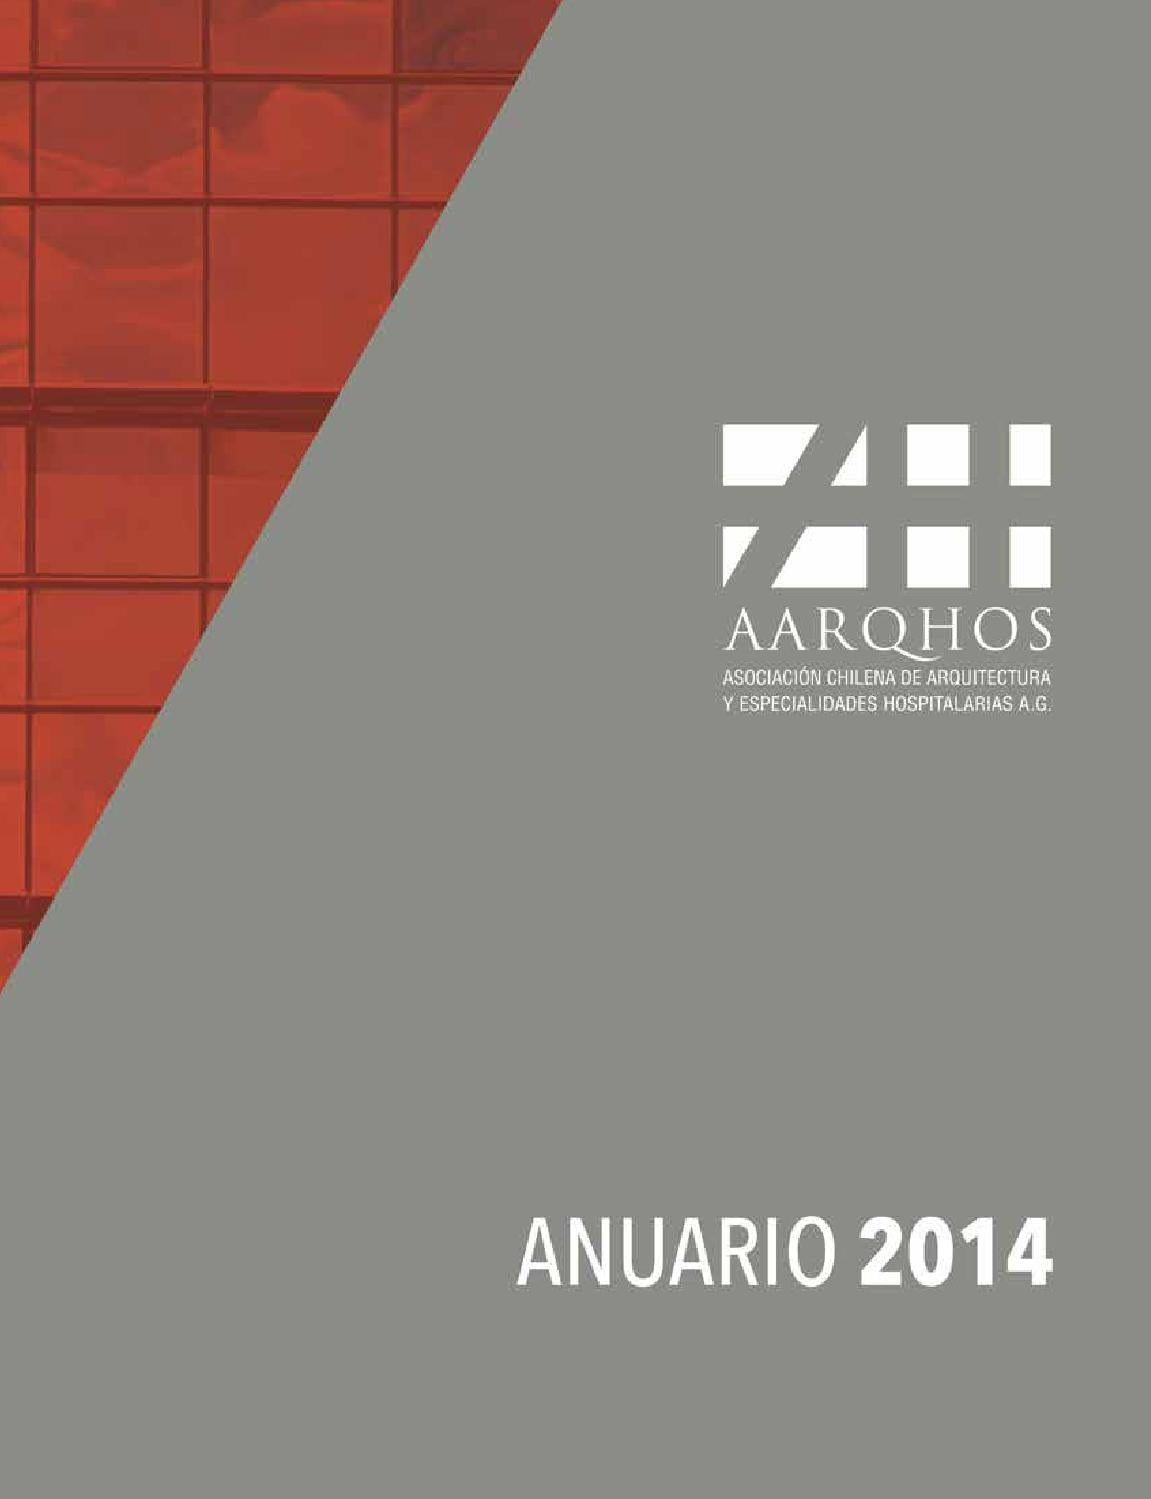 Anuario AARQHOS 2014 by Edirekta Marketing Integral - issuu